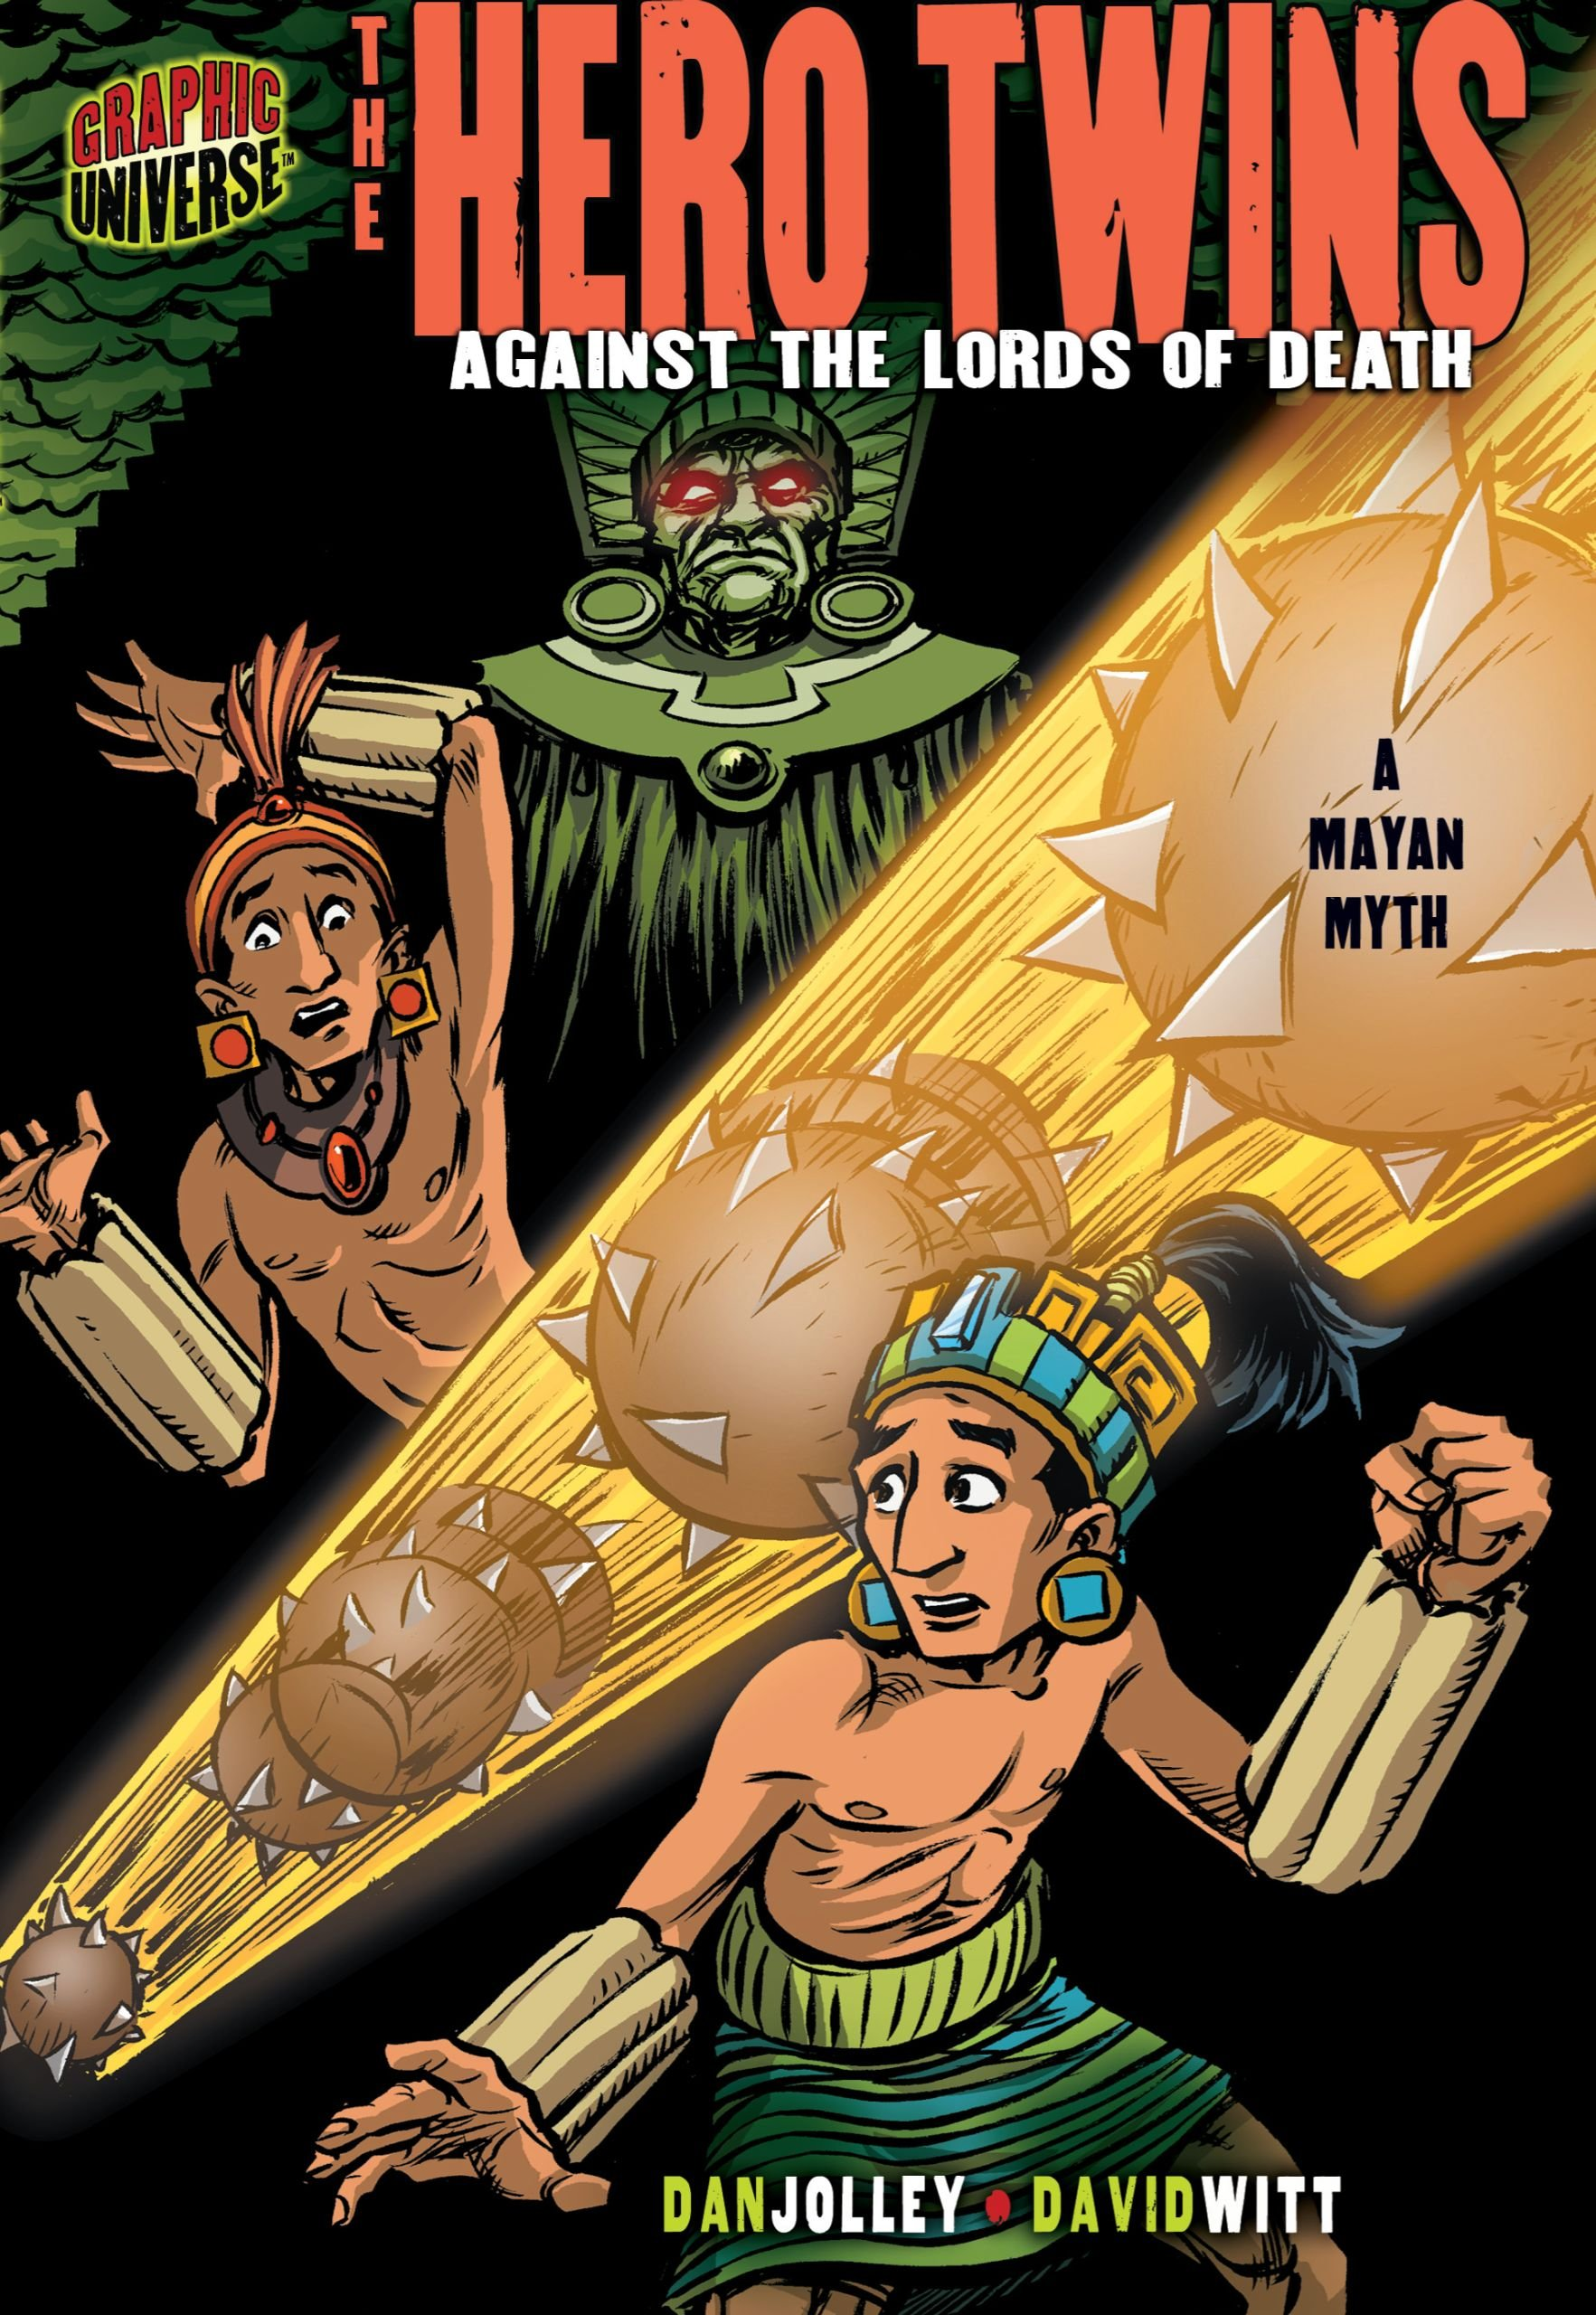 The Hero Twins: Against the Lords of Death [a Mayan Myth] (Graphic Myths and Legends) PDF